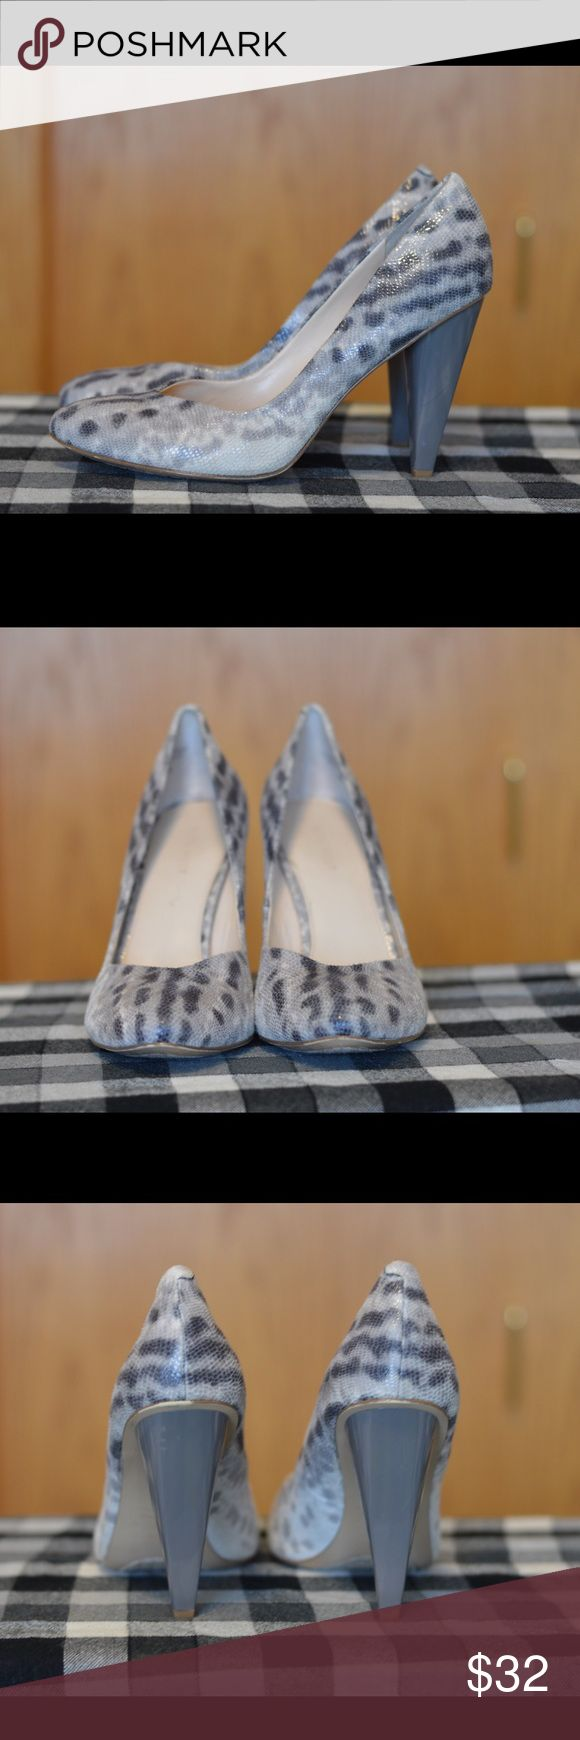 Snake pattern pumps from Nine West Almost new. Nine West. Snake print pumps. Nine West Shoes Heels